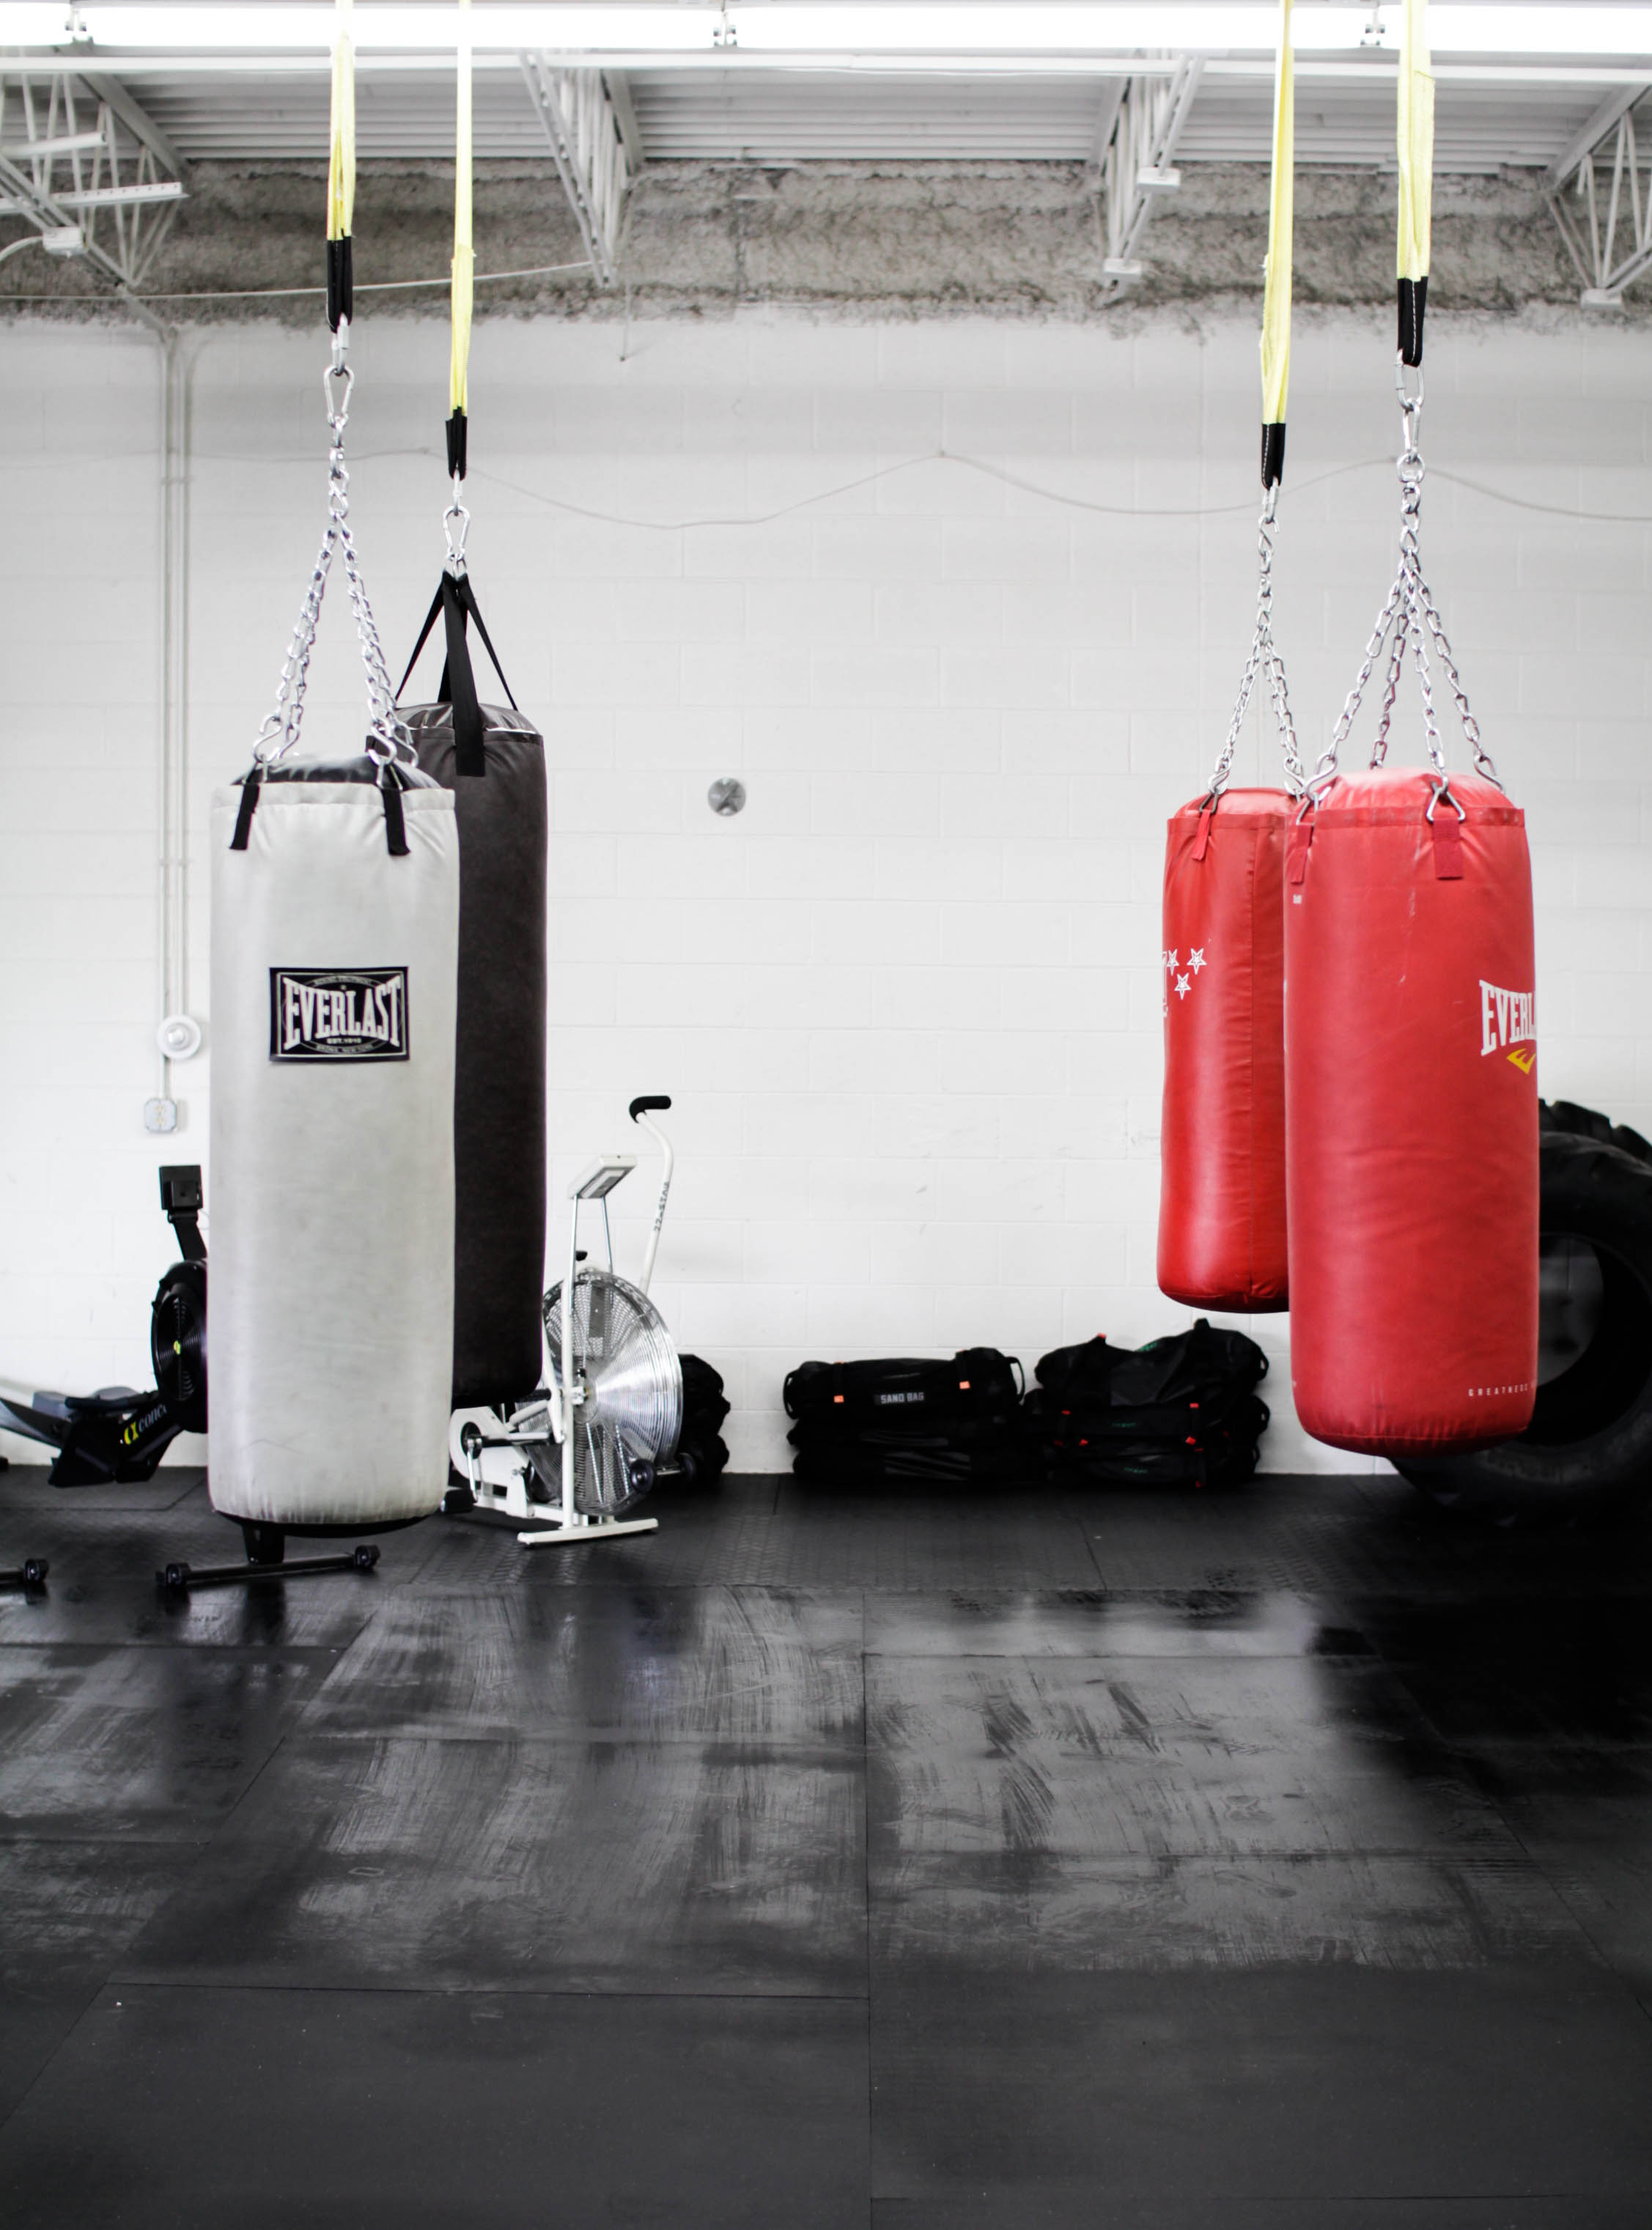 Affordable-Boxing-Classes-In-Naperville-Illinois